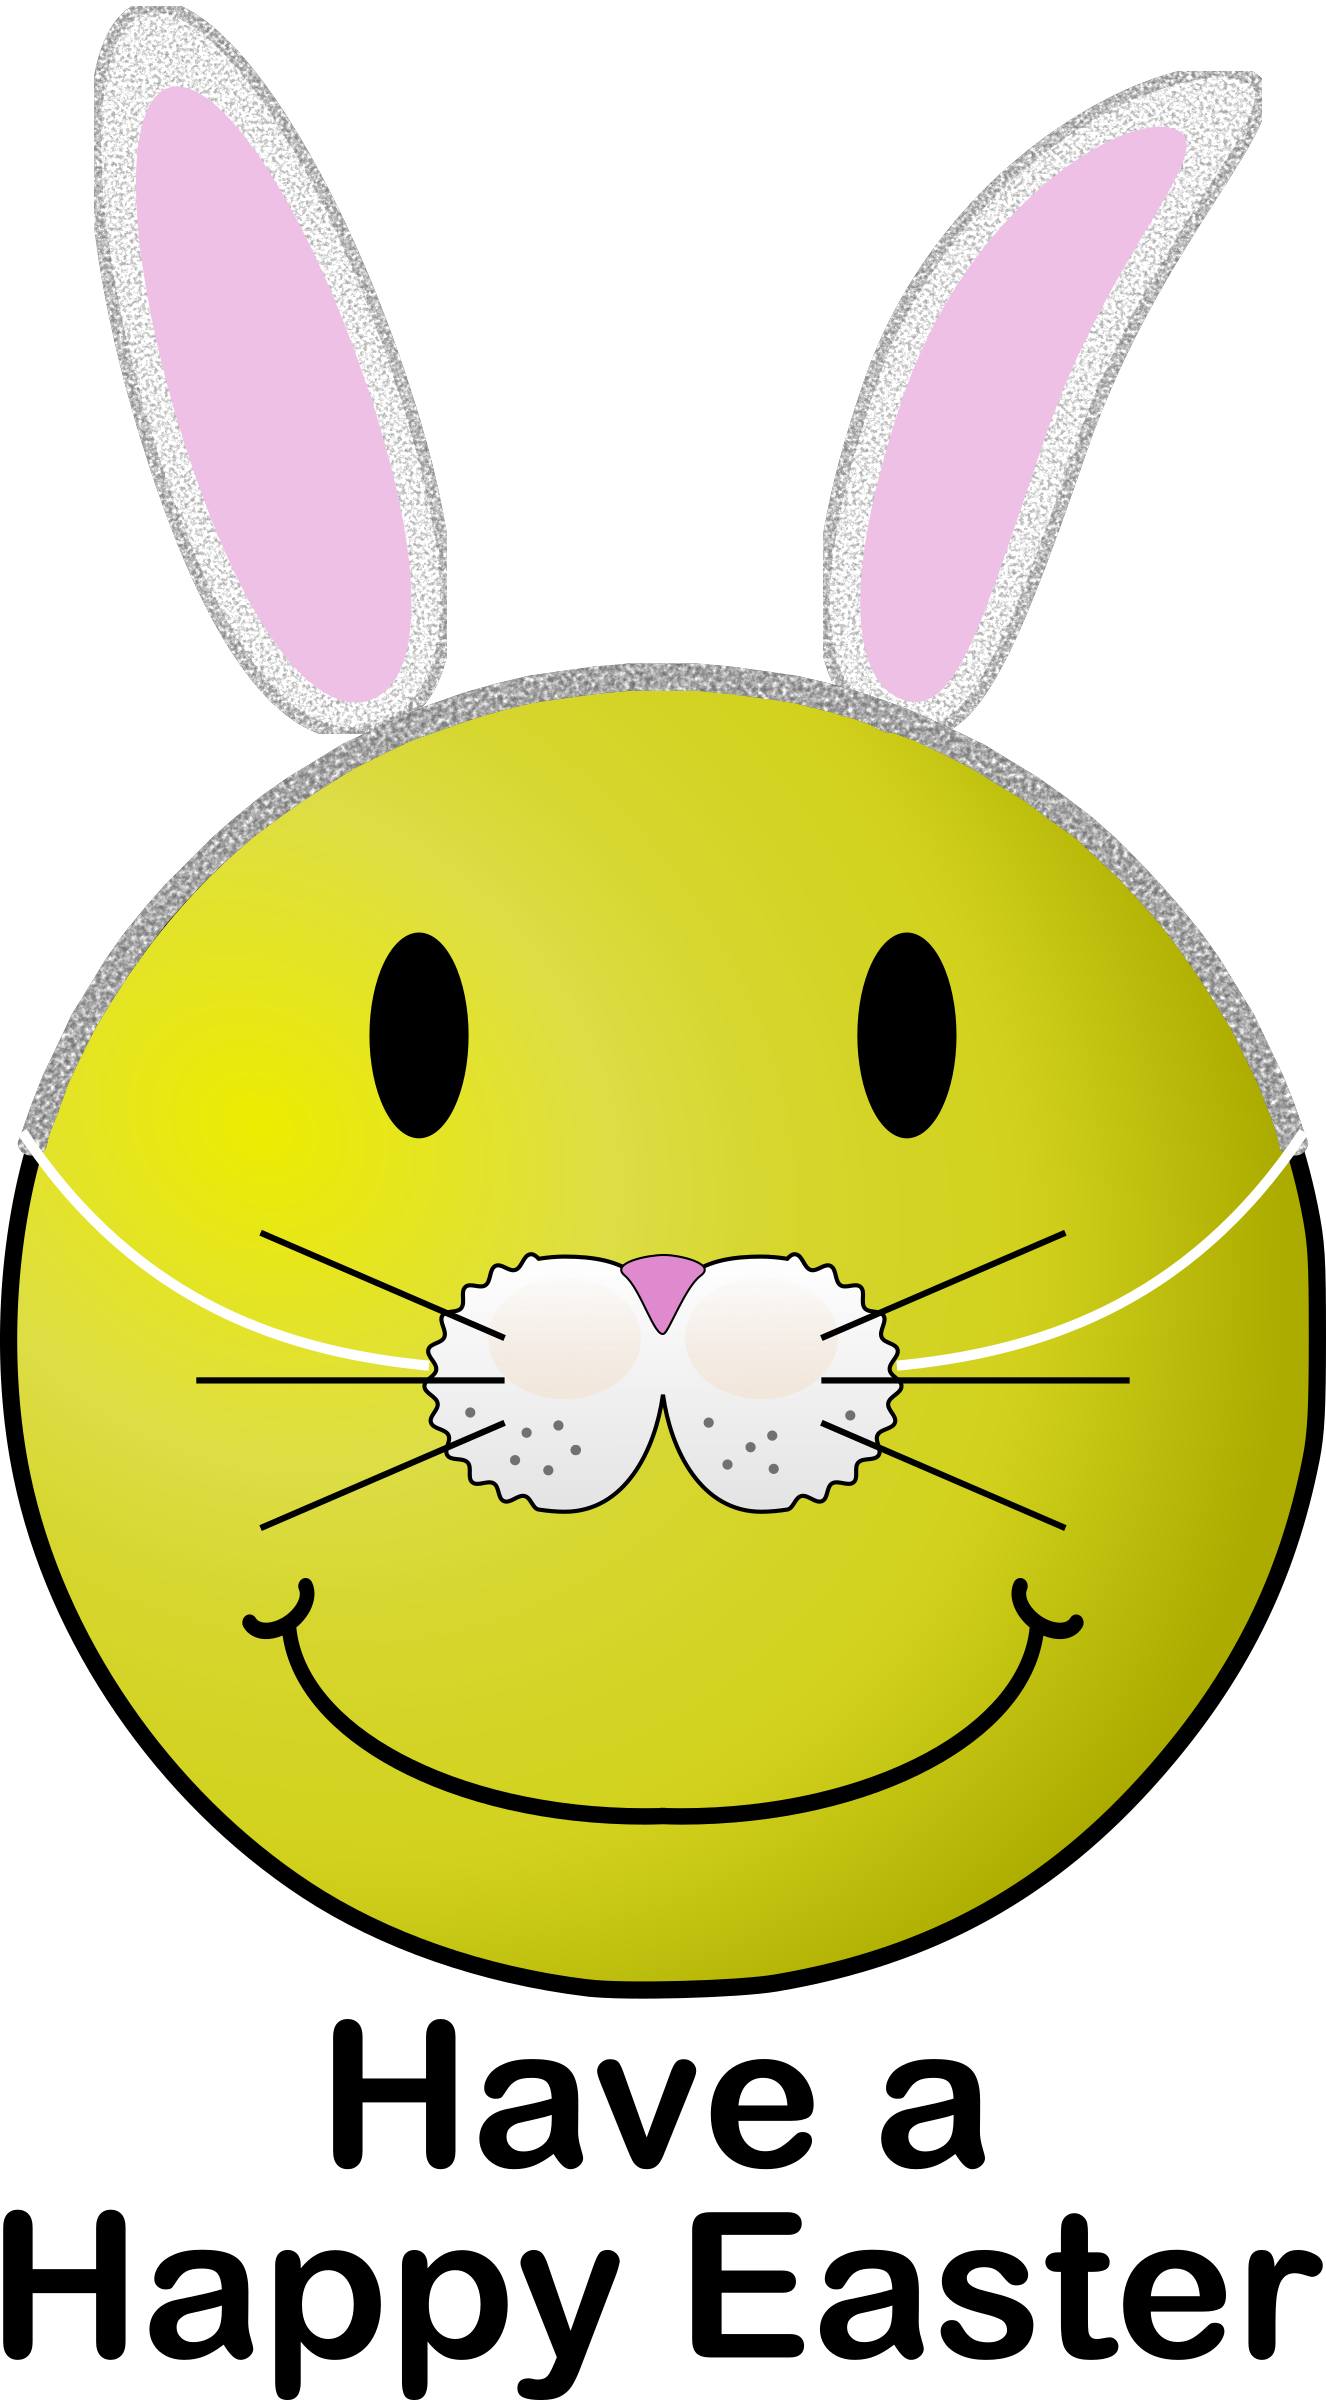 Easter Smiley by Arvin61r58